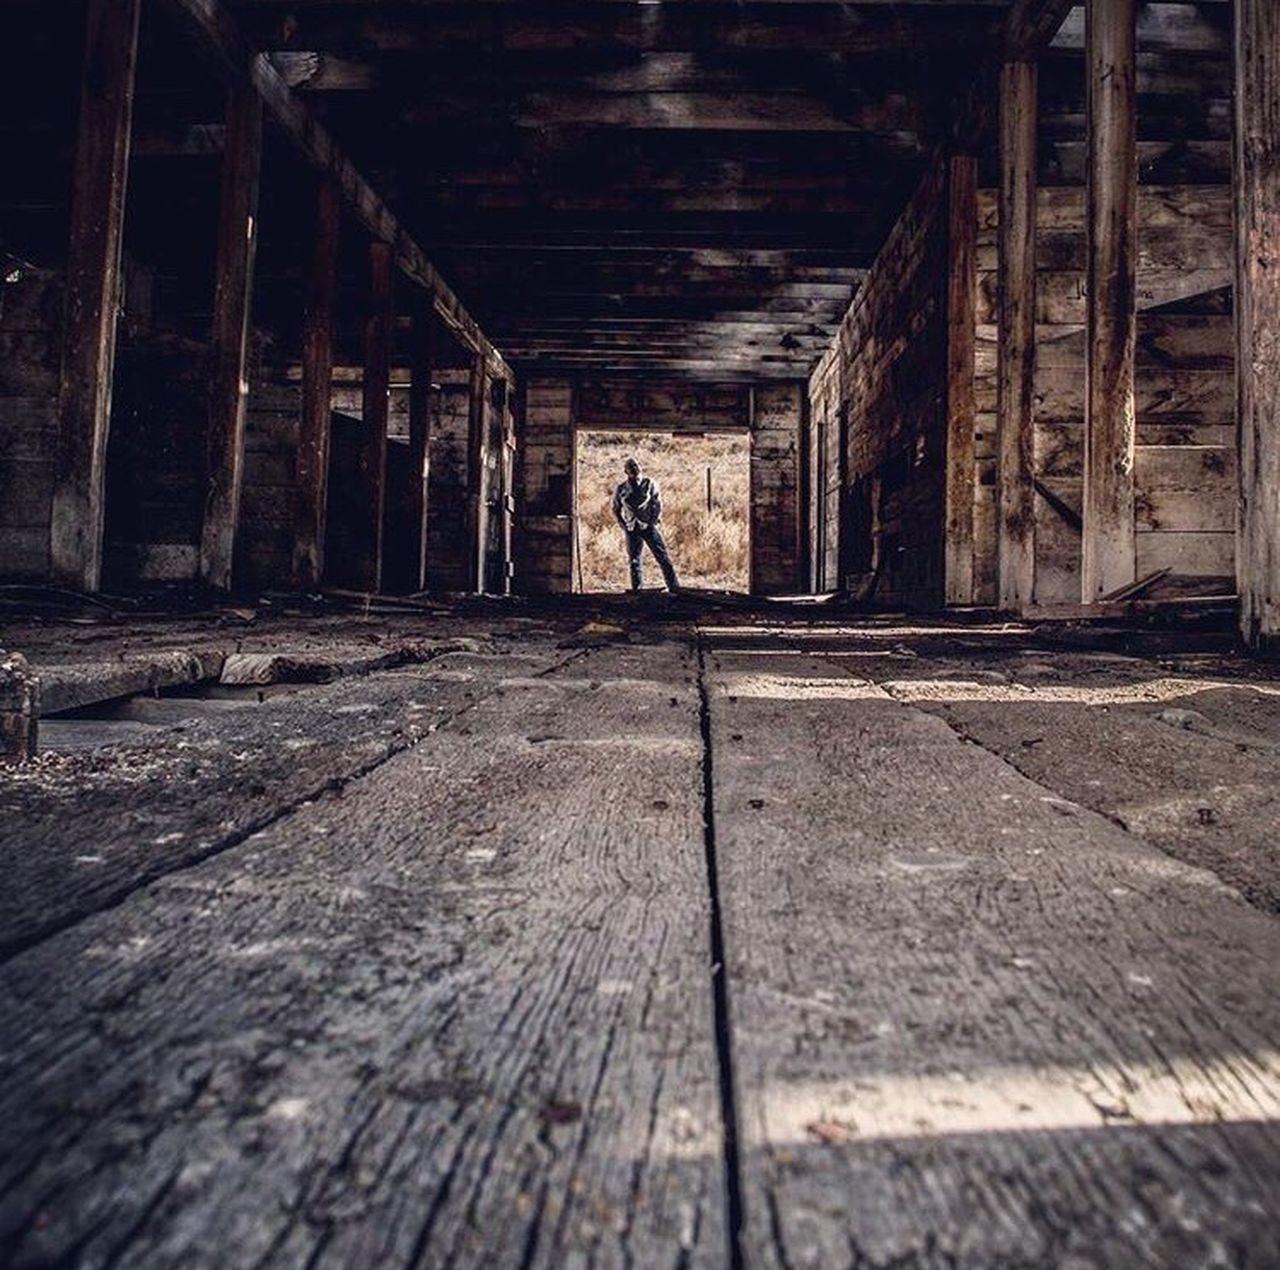 Because your mine, I walk the line Walktheline Abandoned Abandoned Places Abandoned Buildings Abandon_seekers Abandonment Abandoned_junkies Livetoexplore ExploreEverything Neverstopexploring  Osoyoos, BC Osoyoos Okanagan Valley British Columbia Totescanadian Canada Explorebc Hellobc